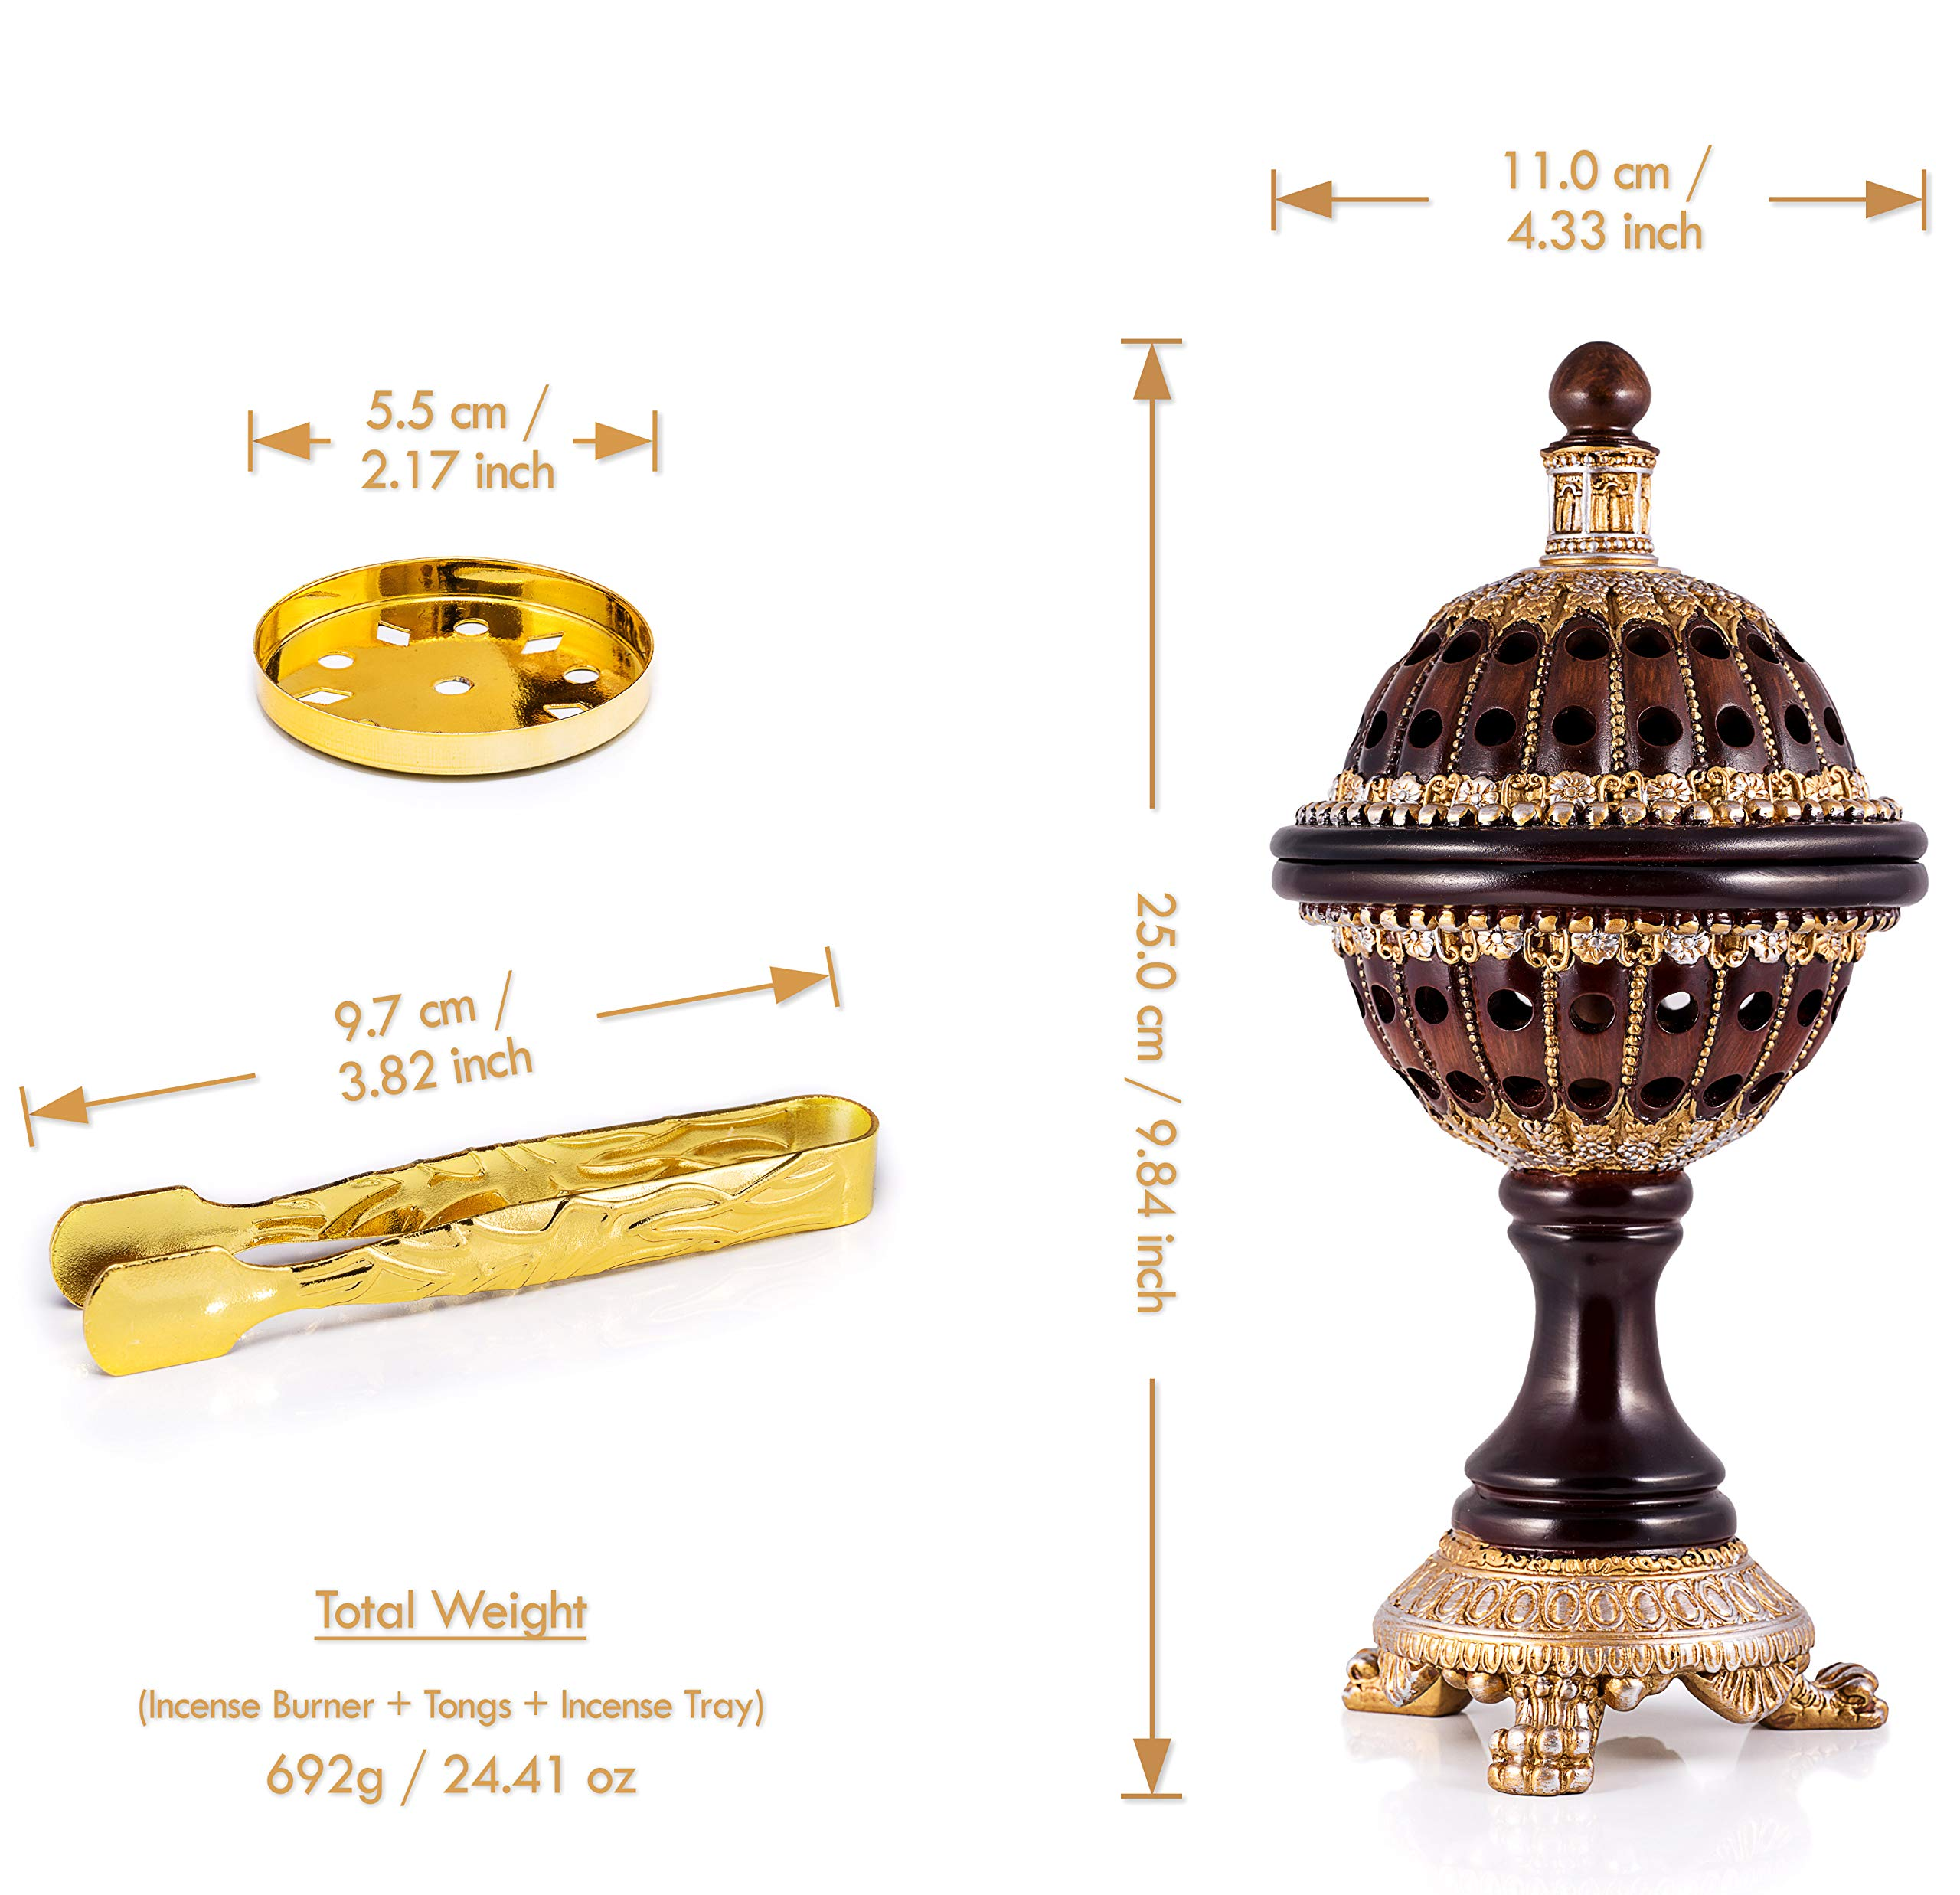 AM Incense Burner Frankincense Resin - Luxury Globe Charcoal Bakhoor Burners For Office & Home Decor by AM (Image #3)